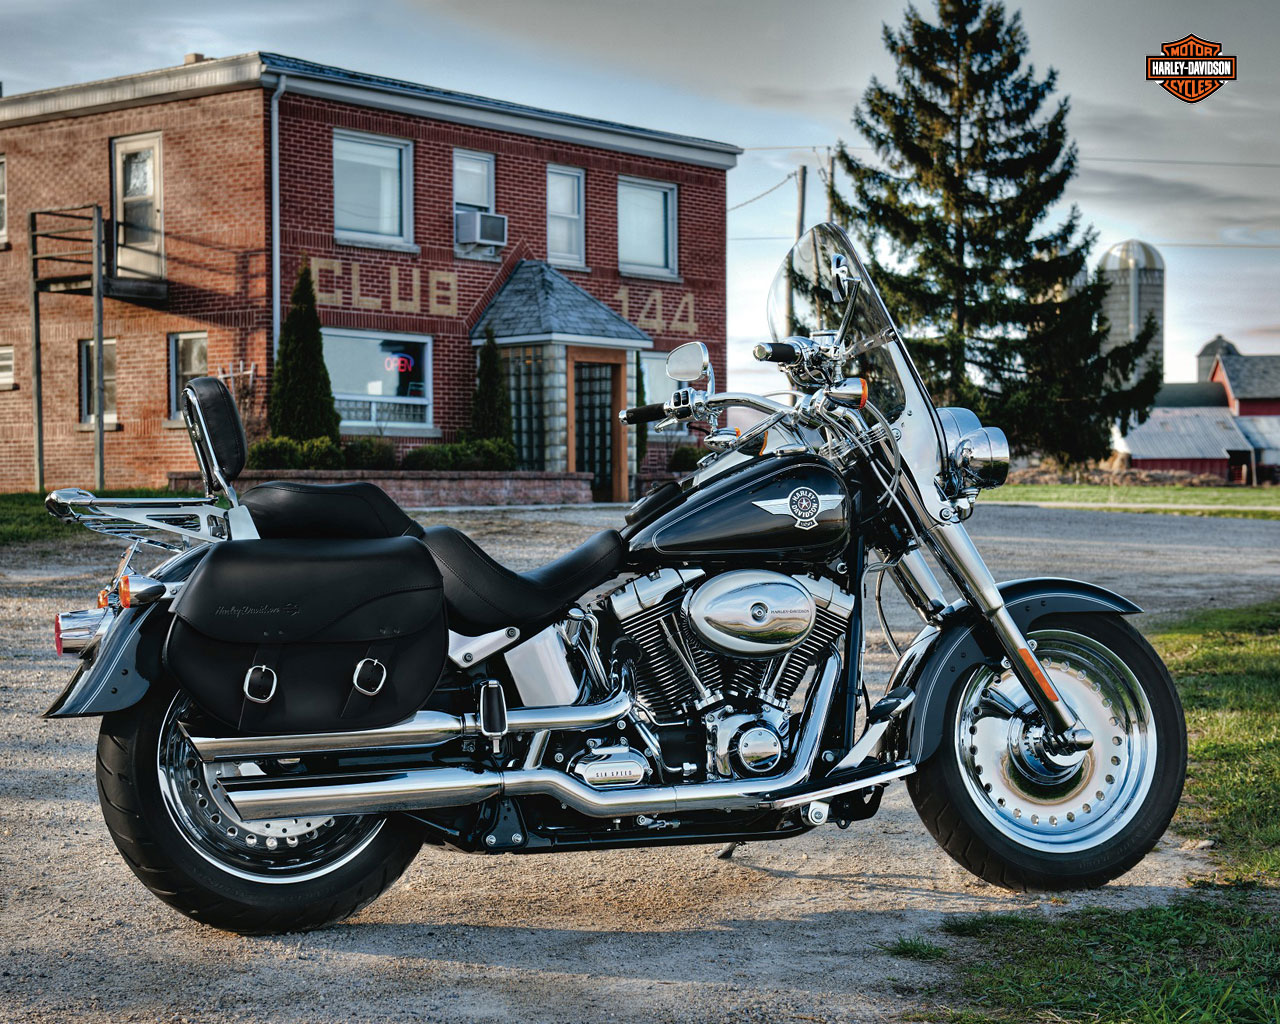 2012 Harley-Davidson FLSTF Softail Fat Boy Review